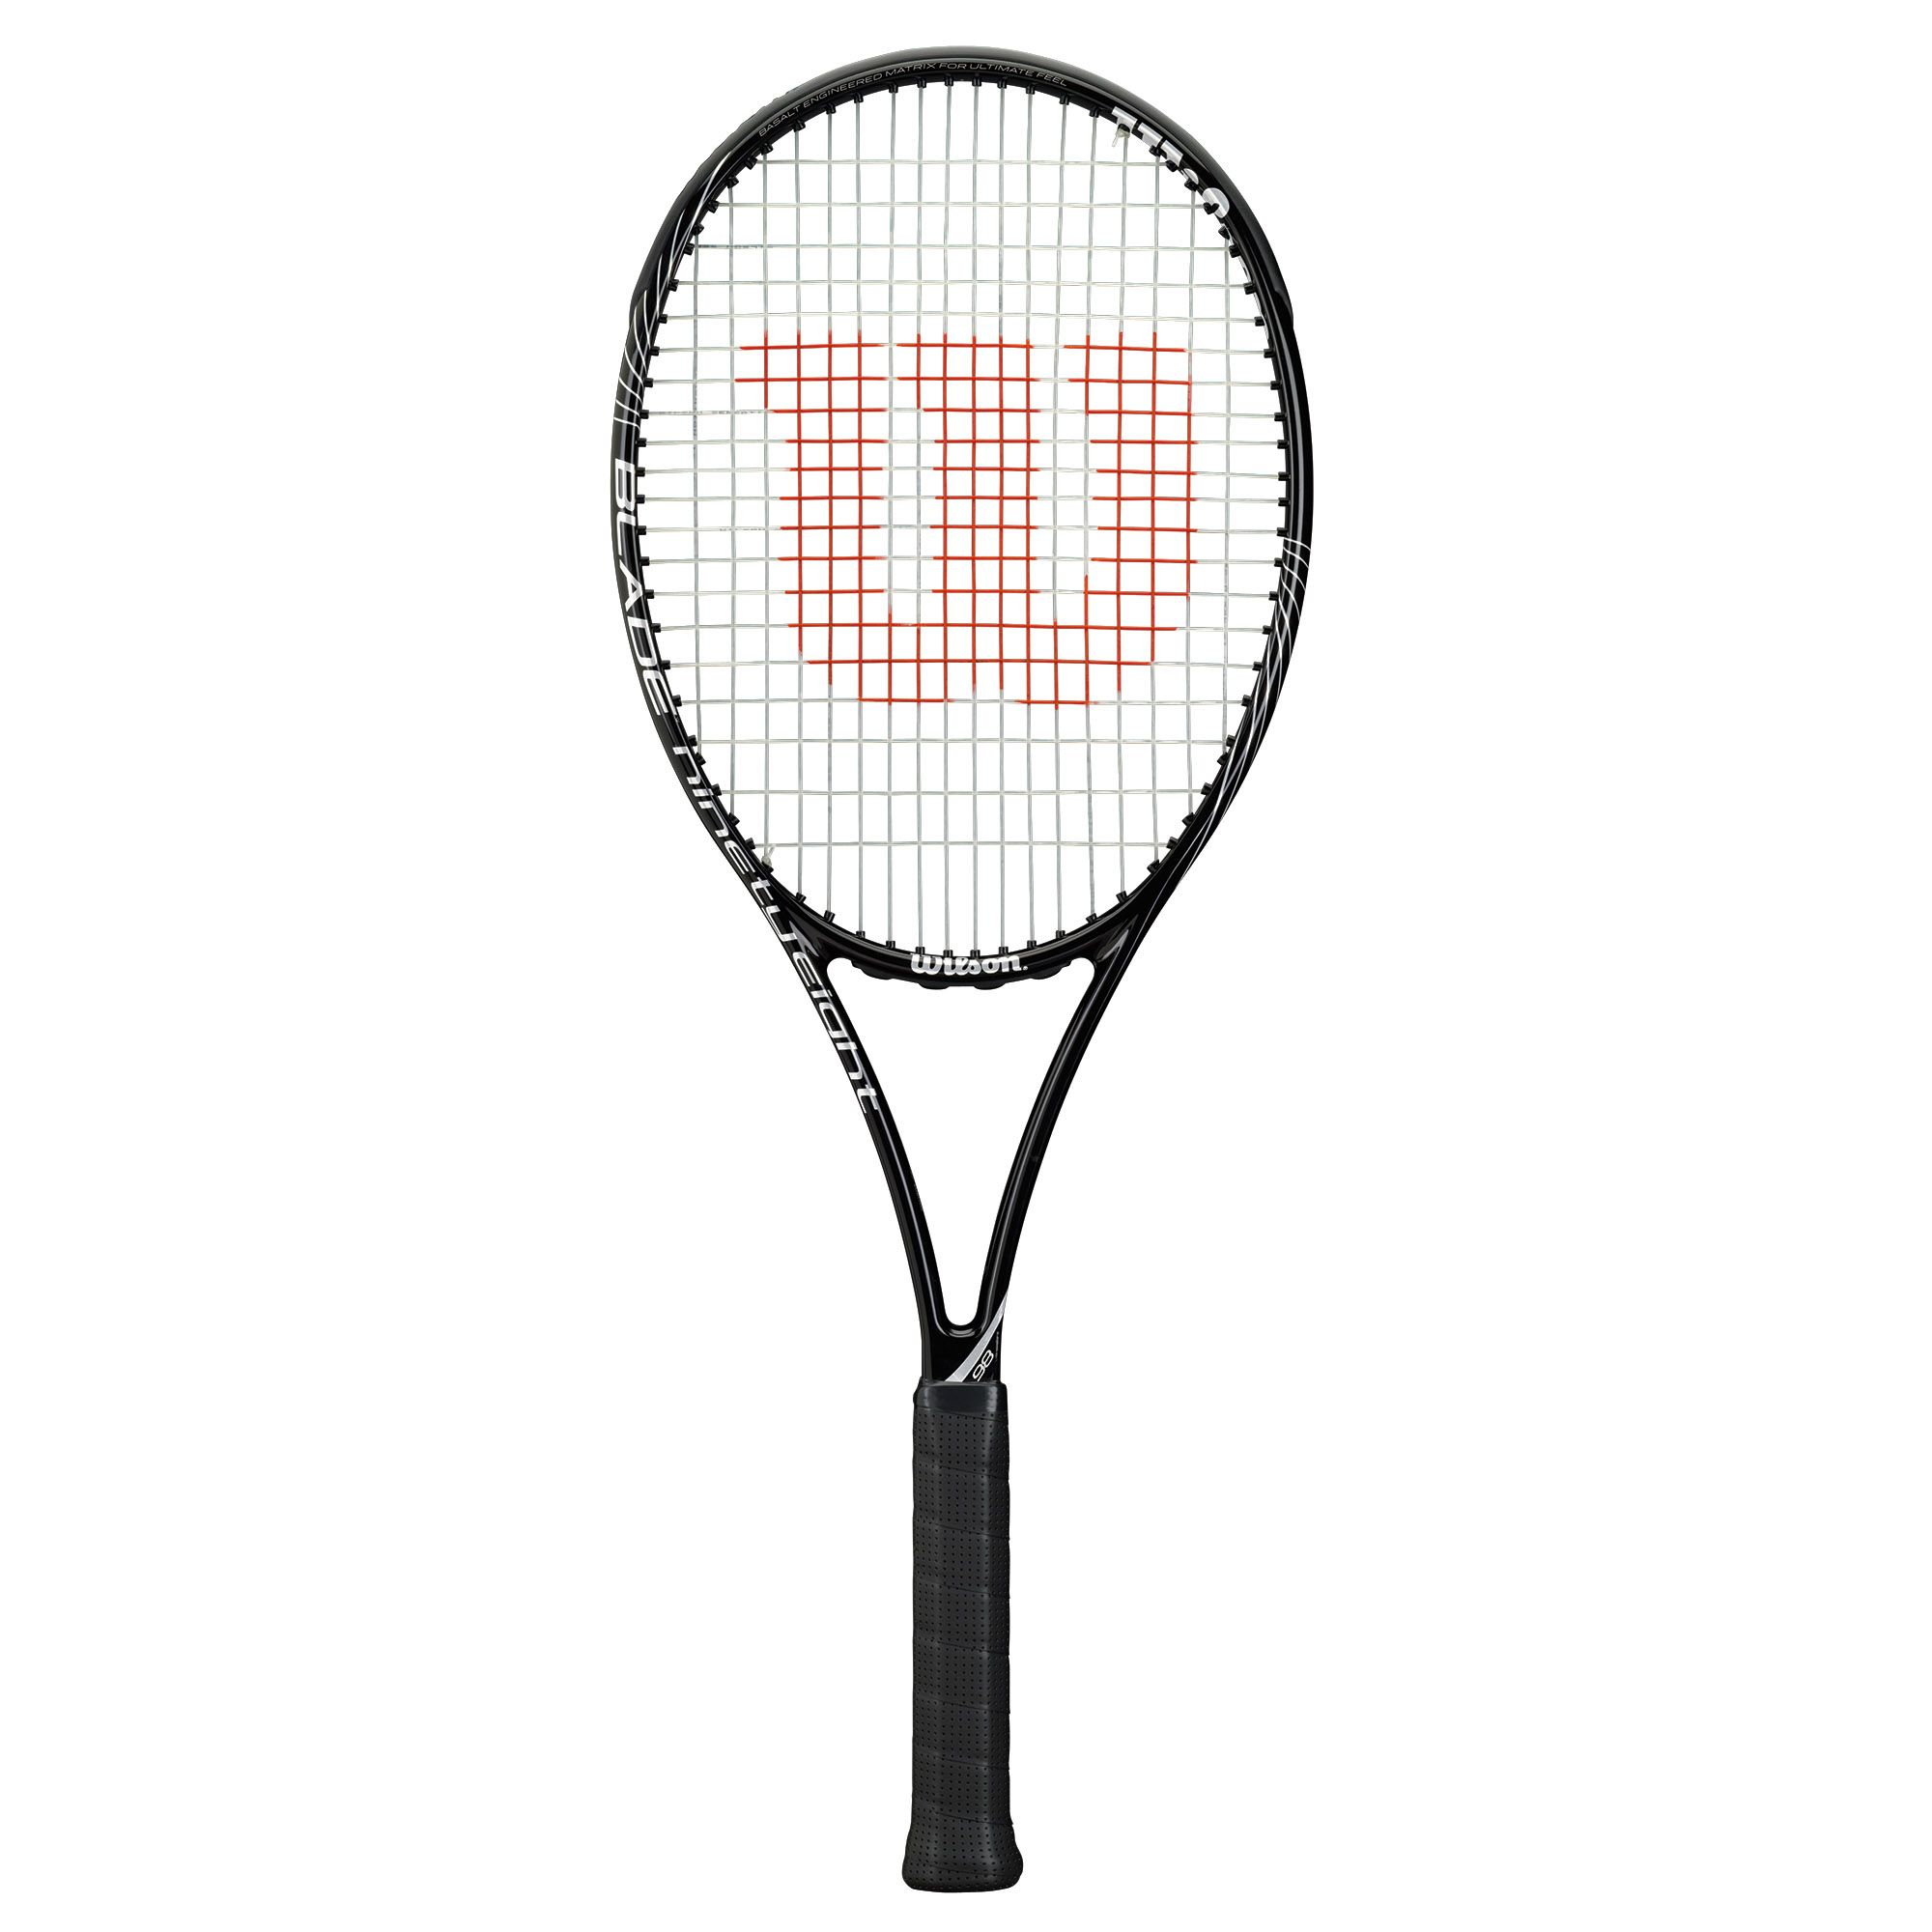 hight resolution of pink tennis racket clipart